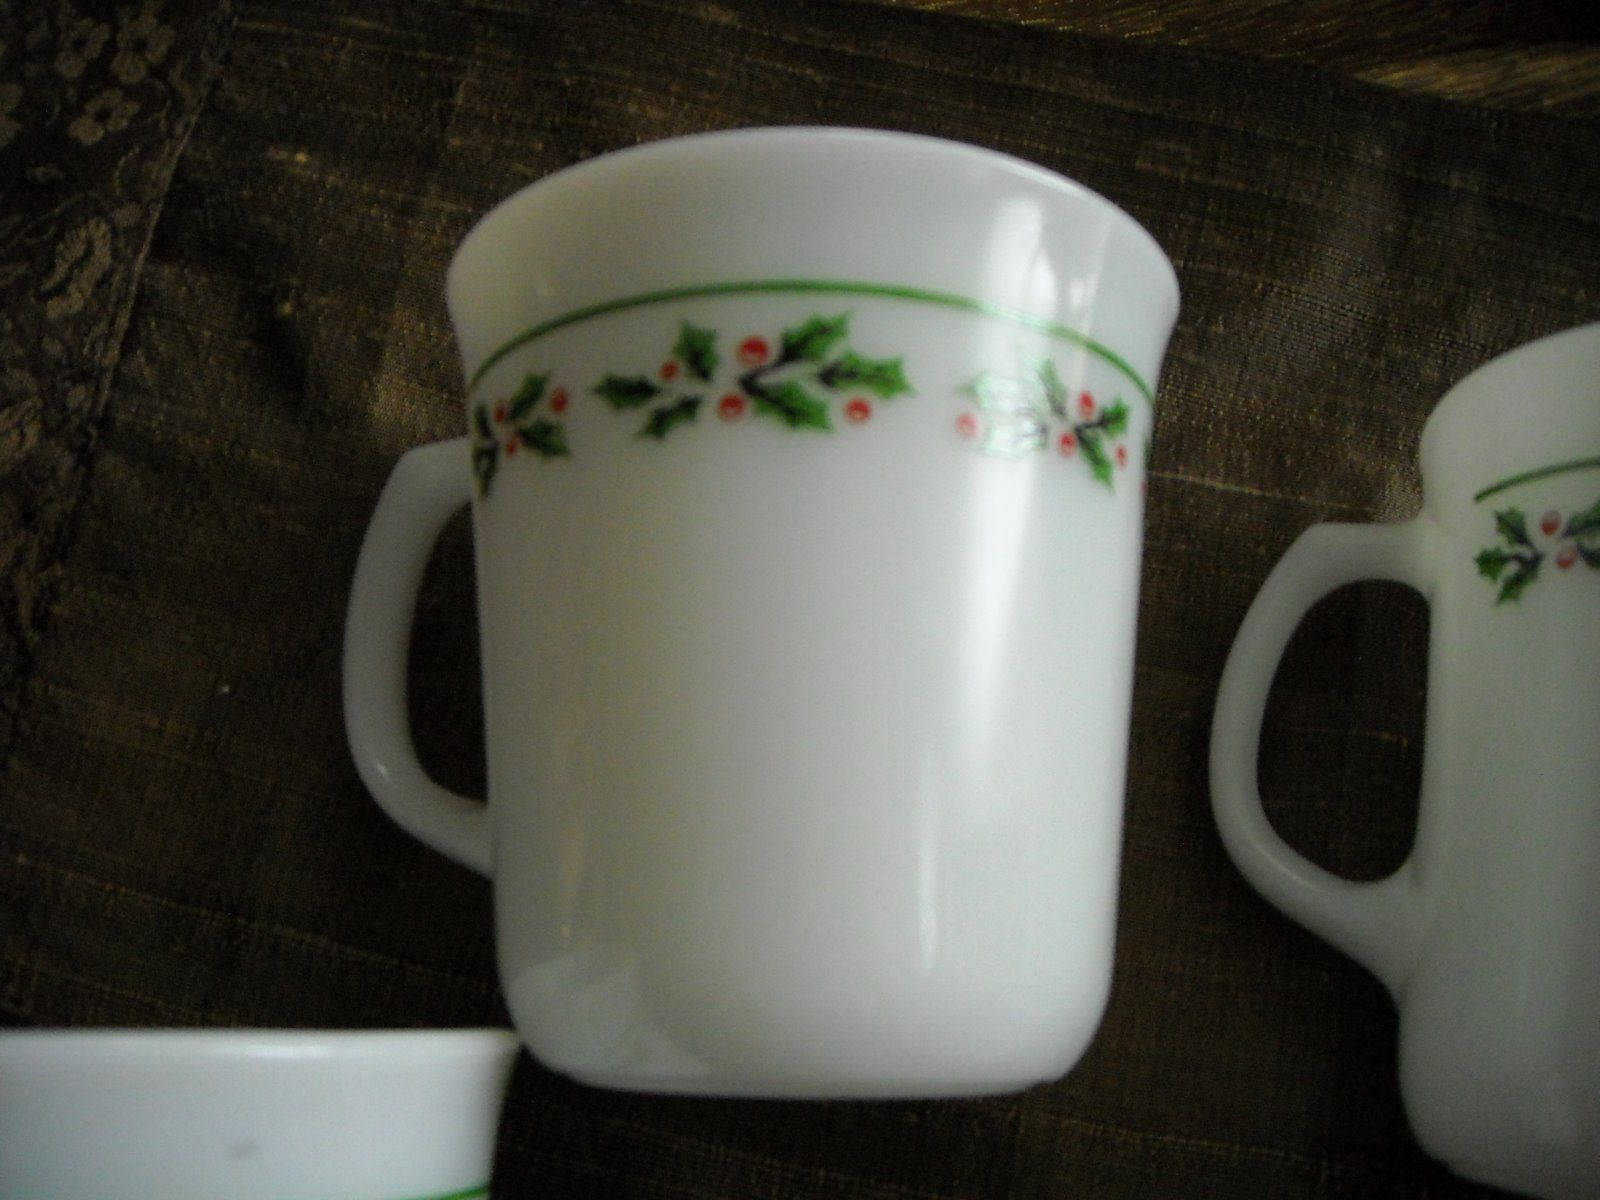 Vintage Corning Ware Coffee Cups Mugs Holly & Berry Trim Set of 4 Milk Glass image 3